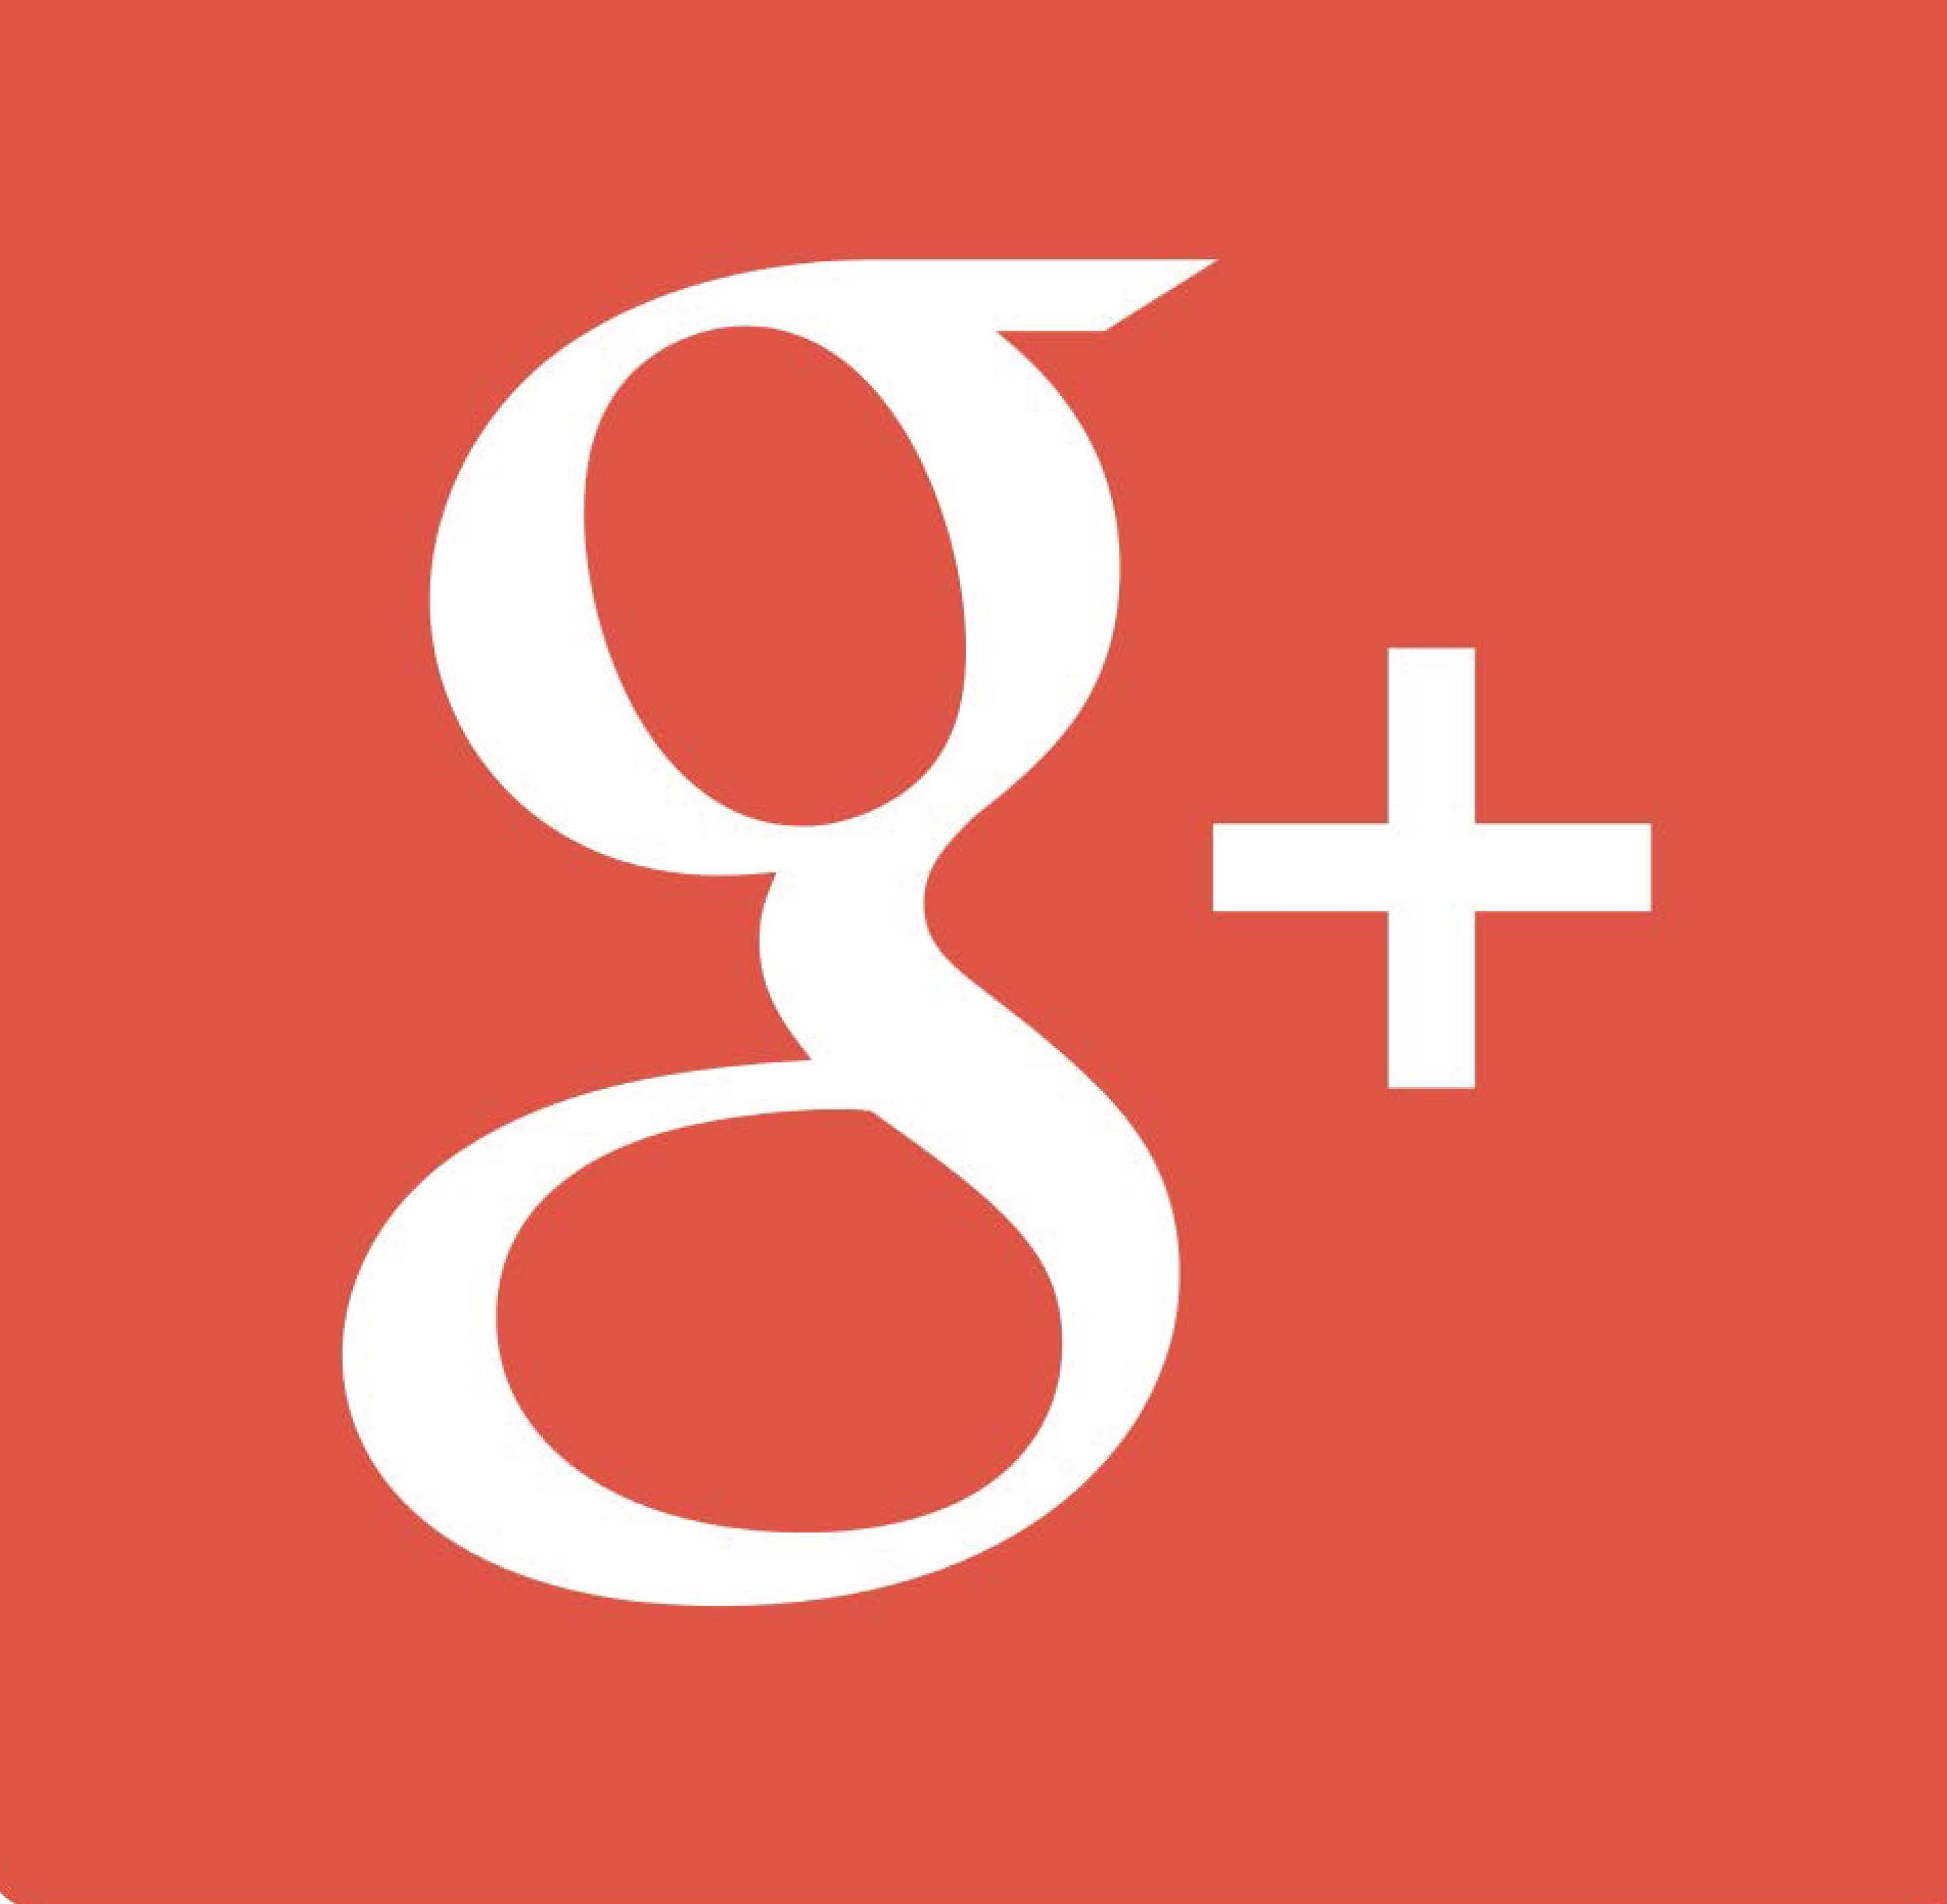 GOOGLE PLUS LOGO QUADRATO